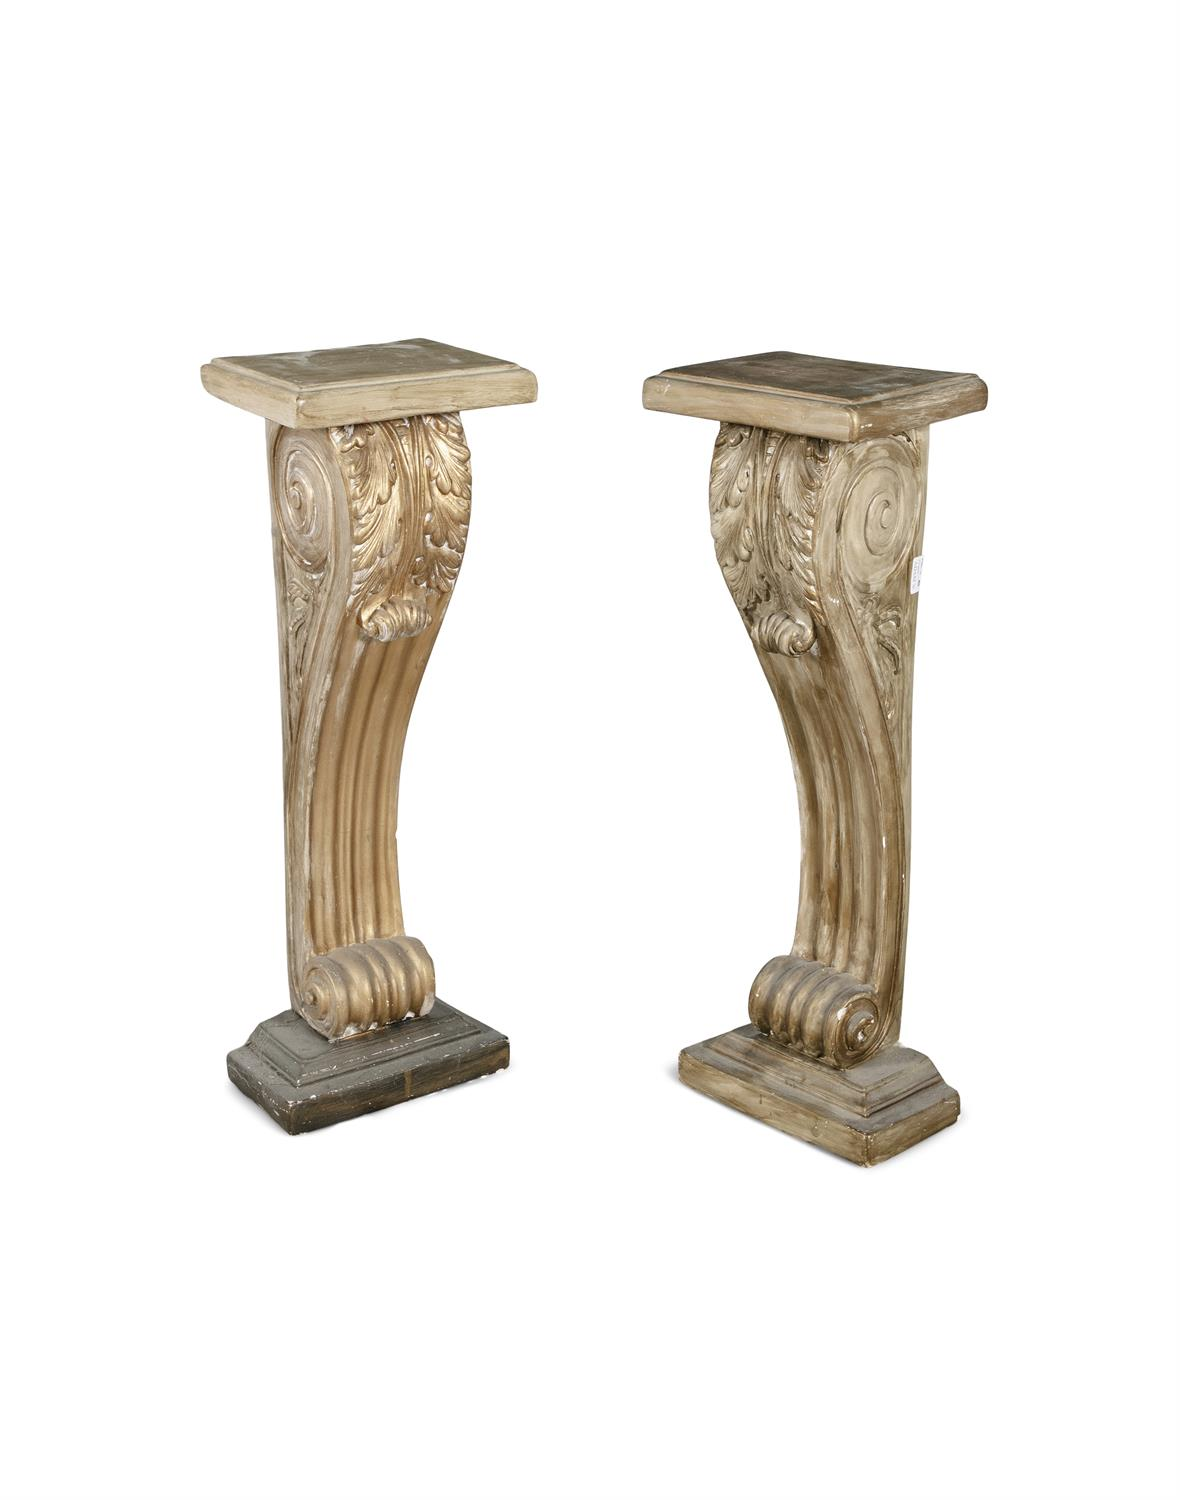 A PAIR OF MODERN PLASTER PILASTERS, painted gold. 81cm high, 28cm wide, 21cm deep - Image 2 of 2